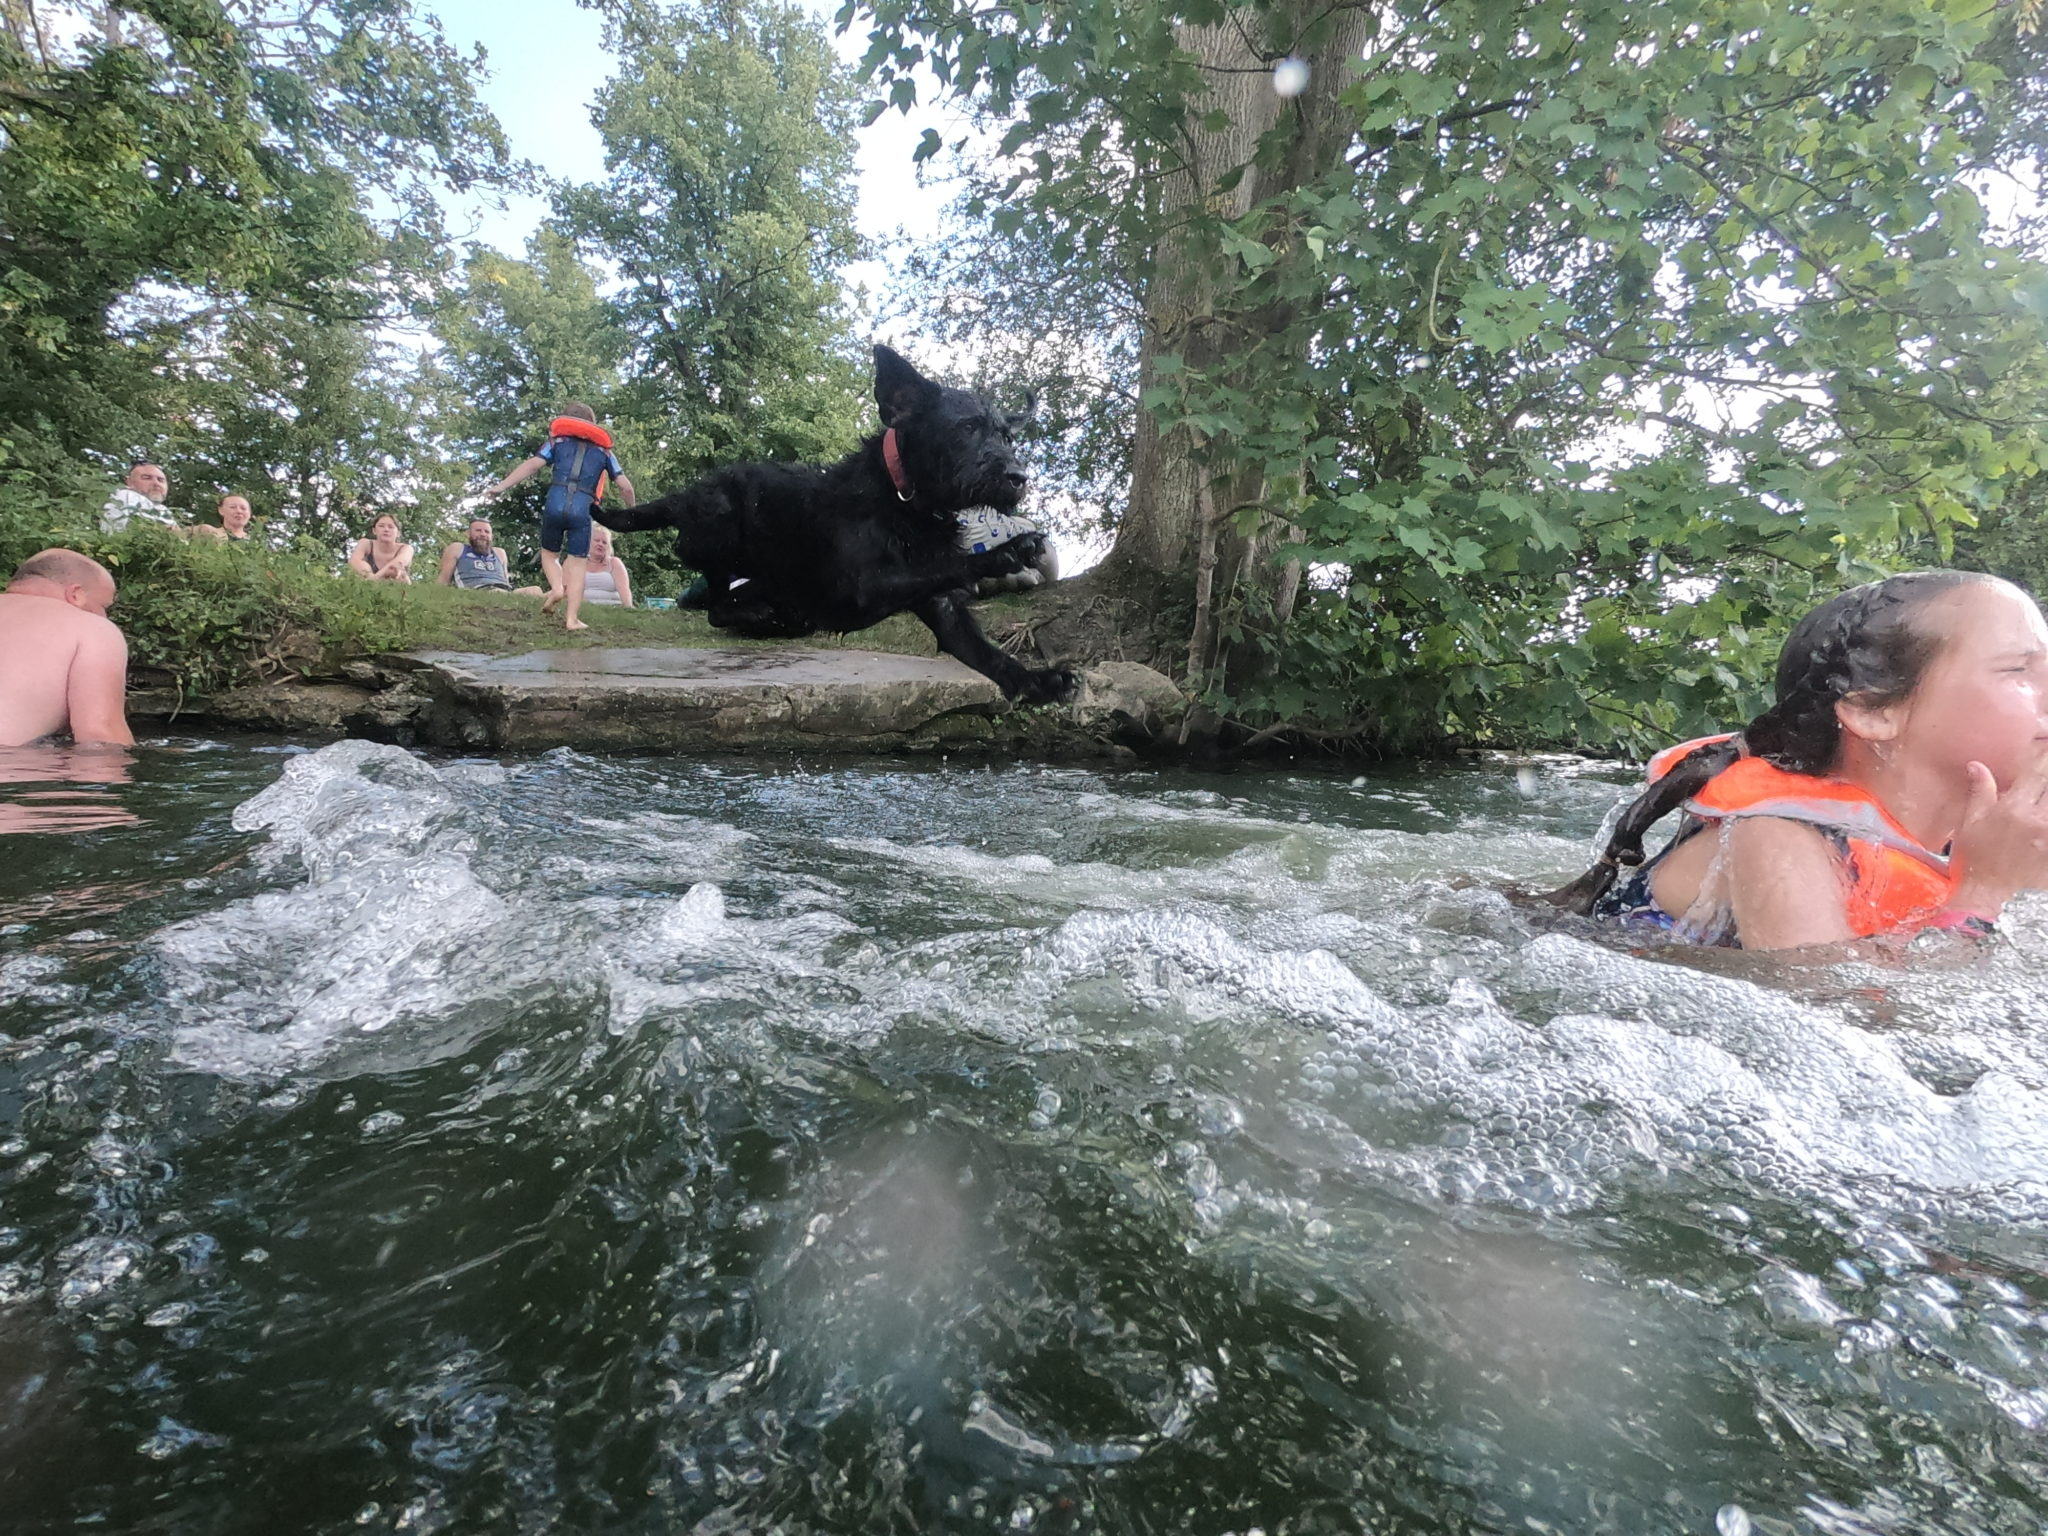 river with dog jumping